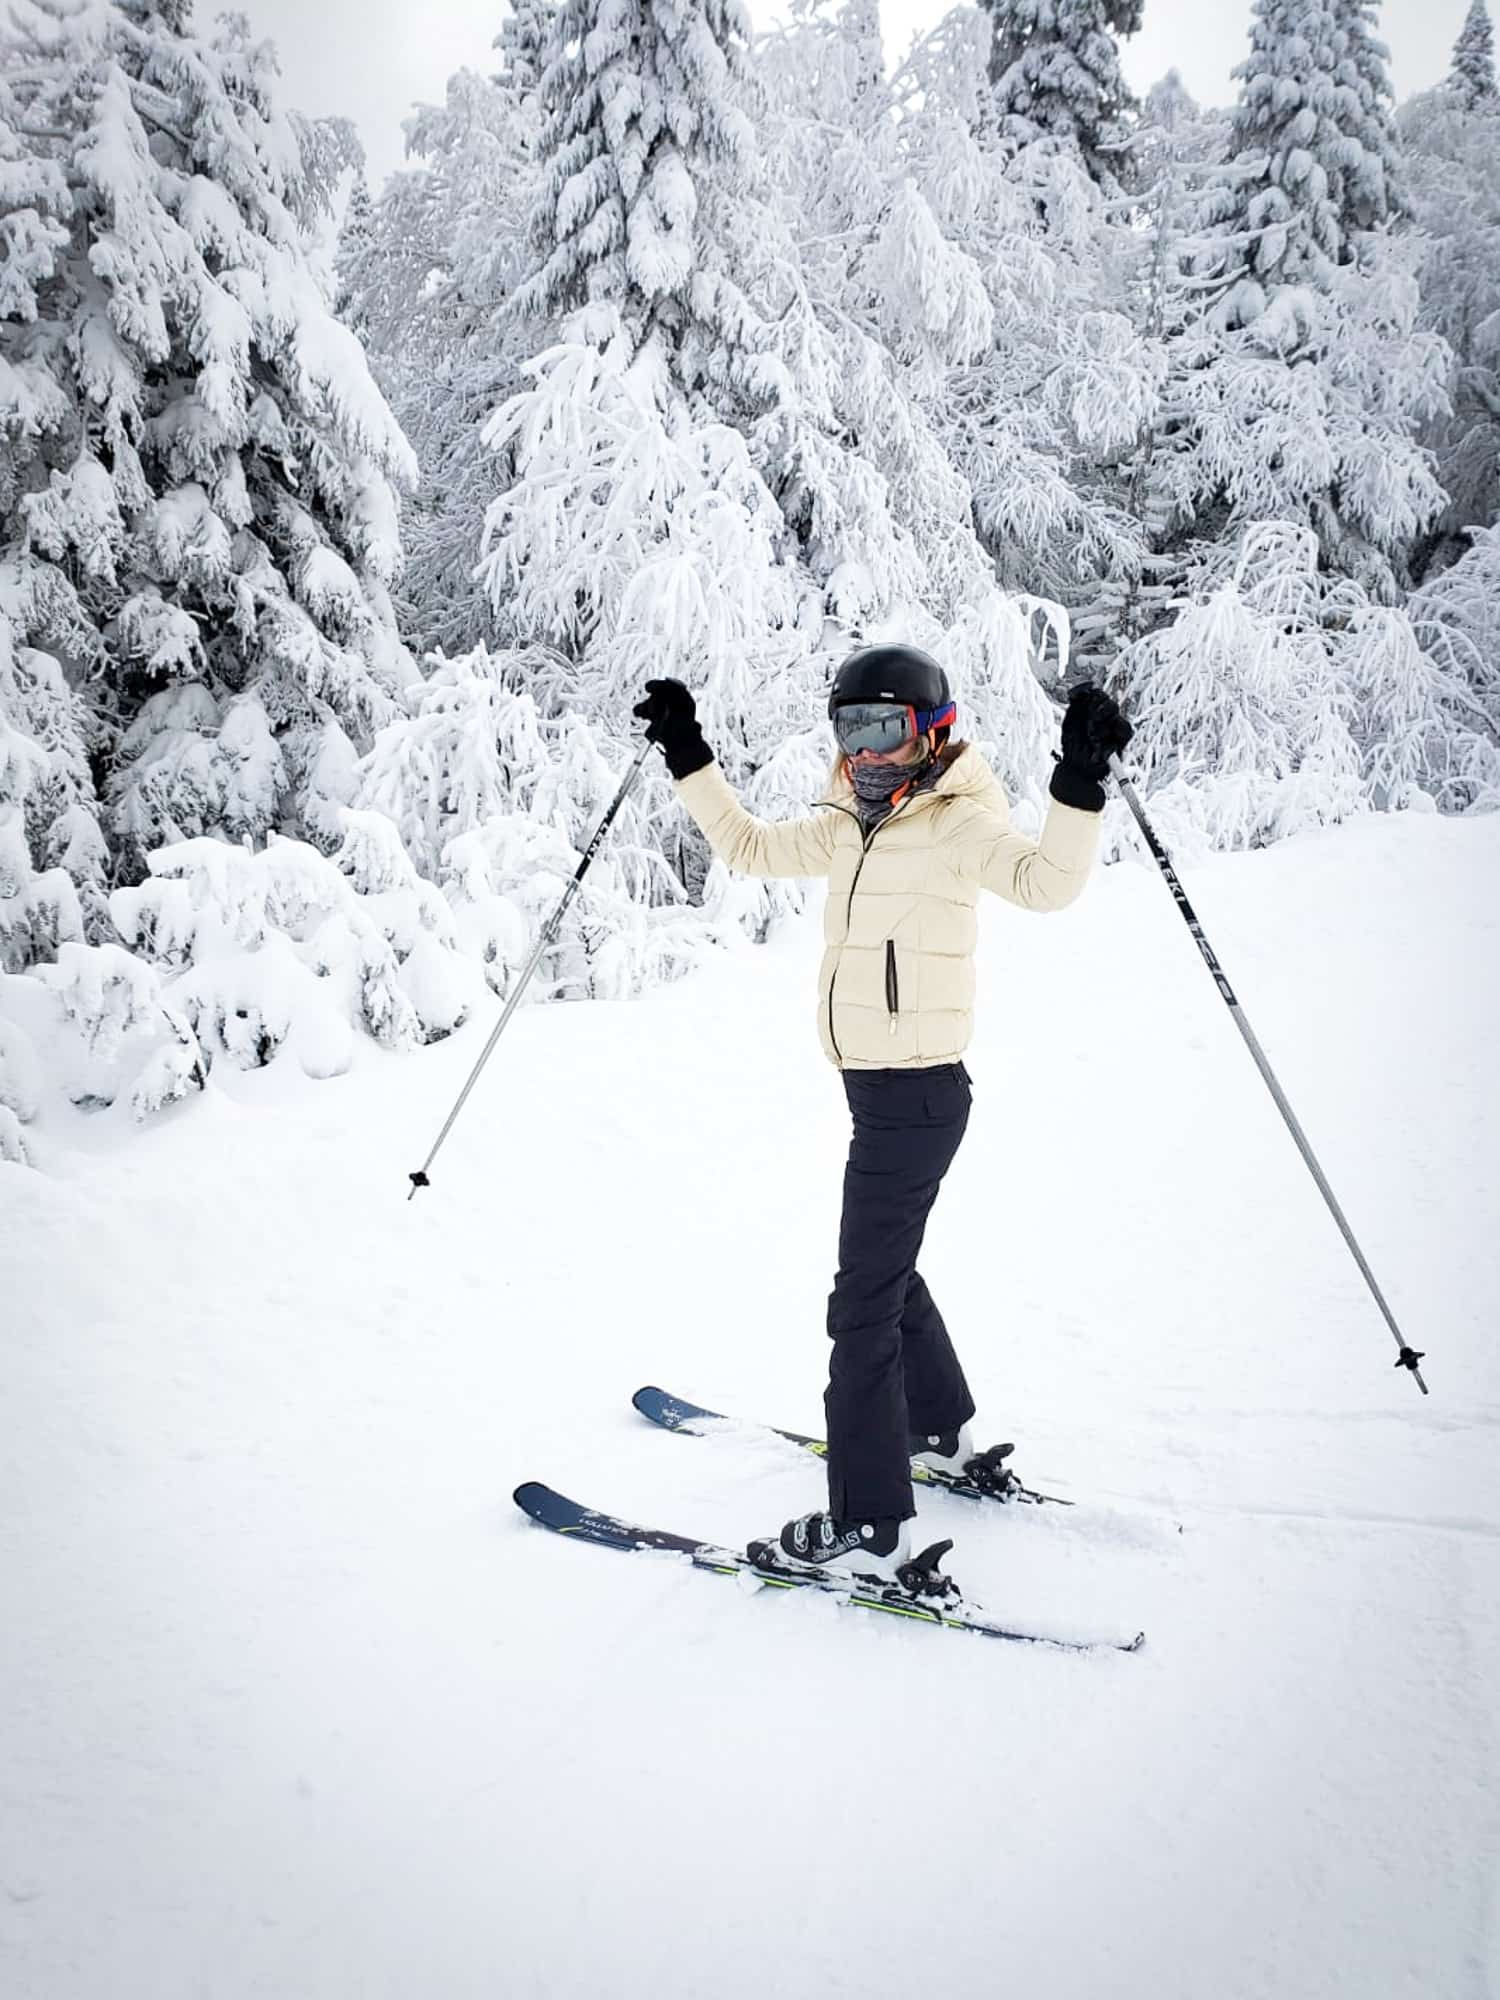 First time skiing is great in Canada because they offer so many lessons for beginners.